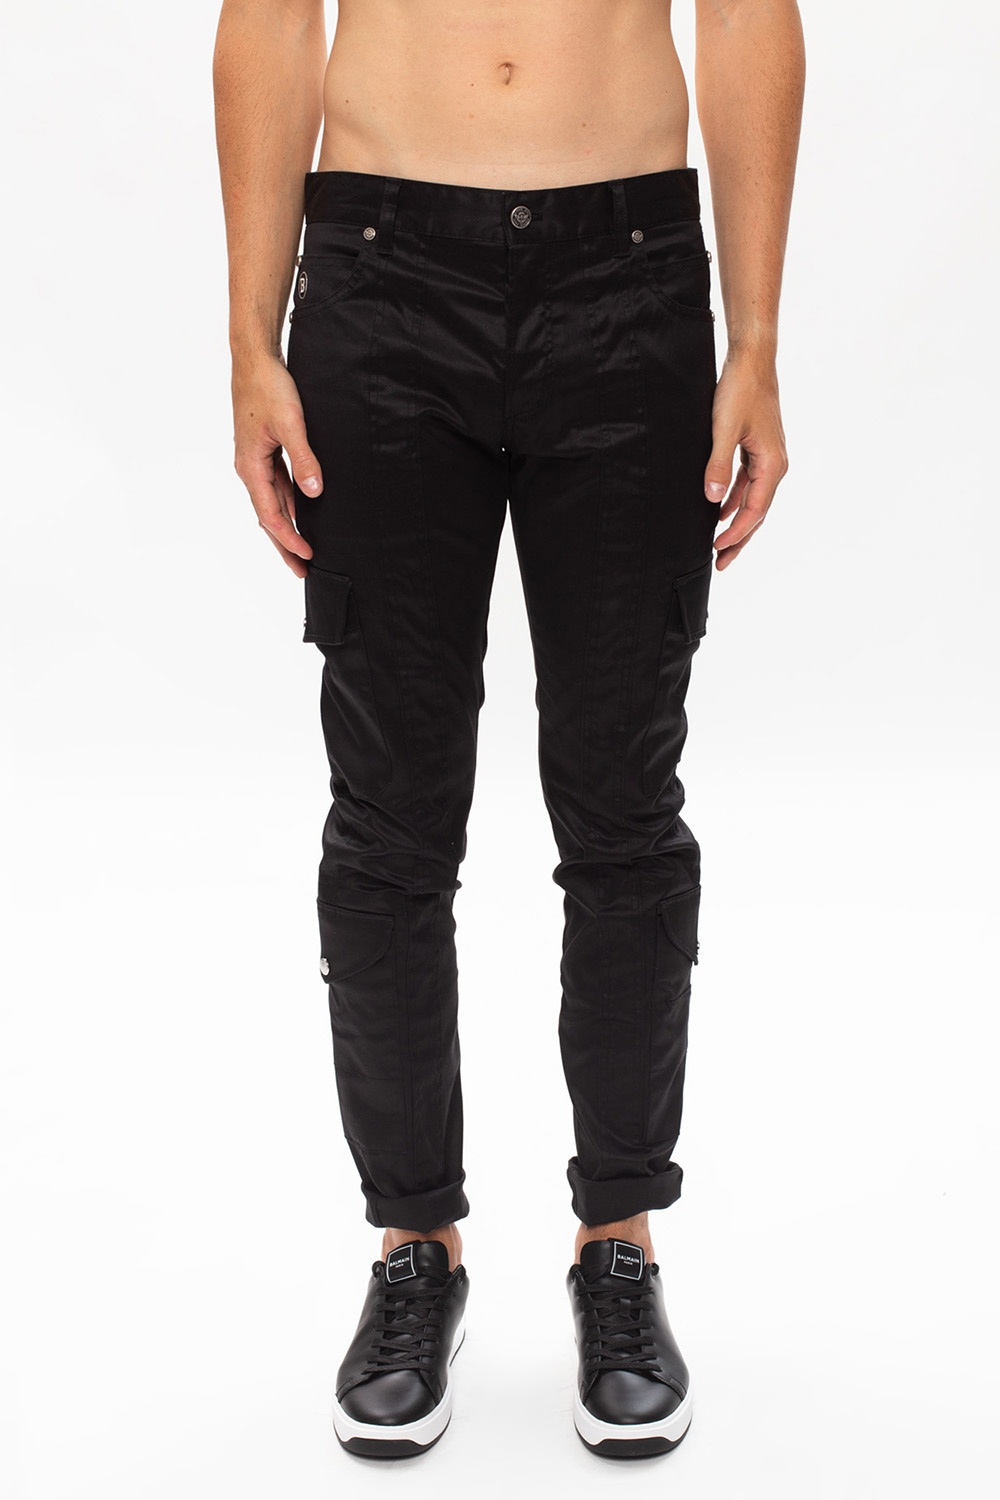 Balmain Trousers with logo